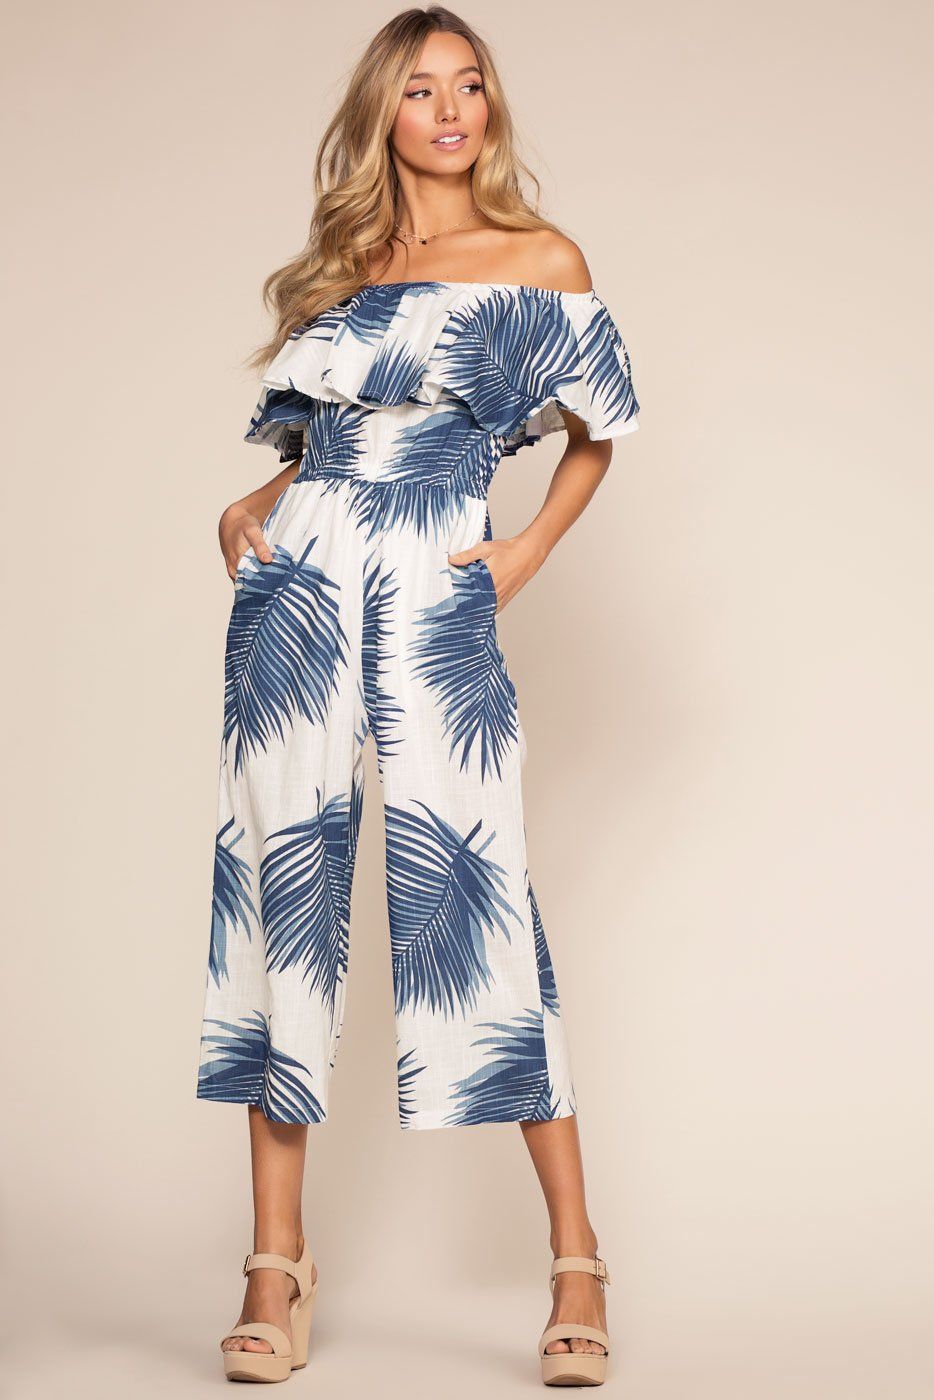 Jumpsuits - Isla Bonita Off The Shoulder Culotte Jumpsuit